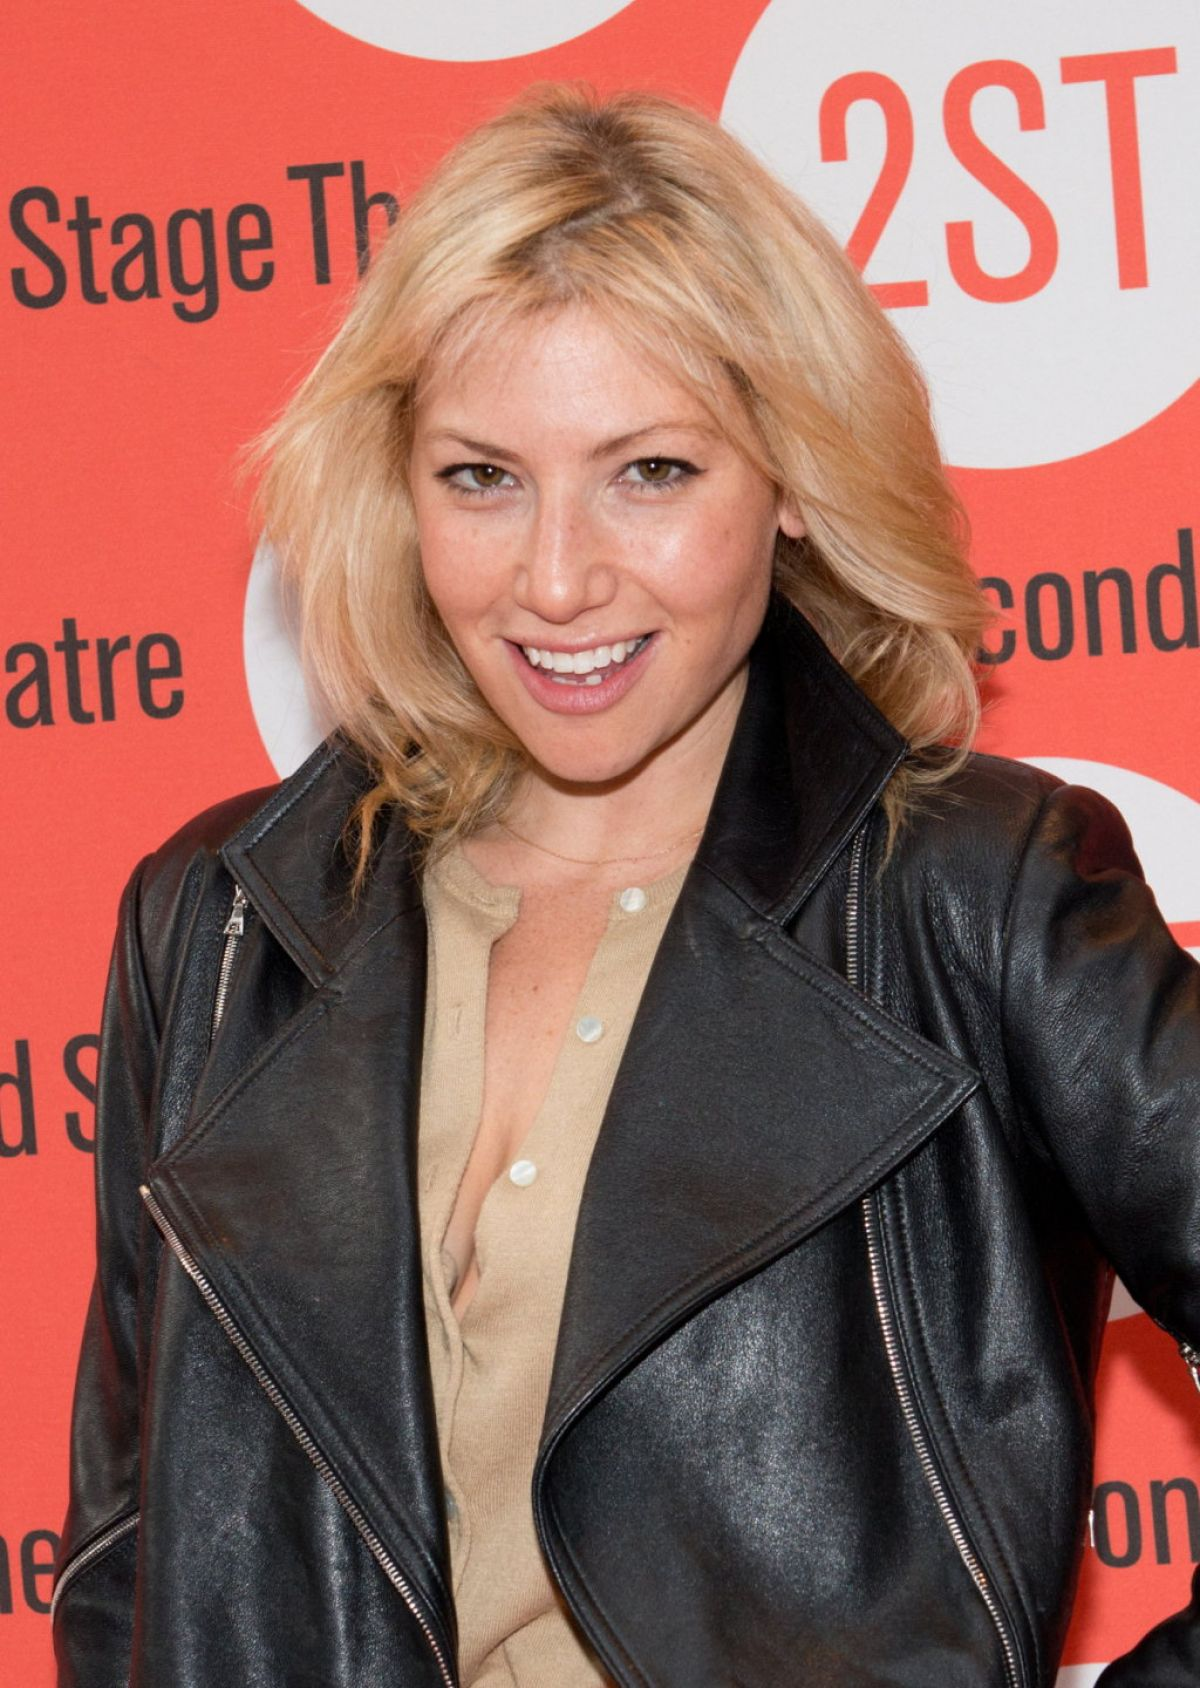 ari graynor imdbari graynor instagram, ari graynor eddie kaye thomas, ari graynor, ari graynor tumblr, ari graynor imdb, ari graynor boyfriend, ari graynor net worth, ari graynor movies, ari graynor bad teacher, ari graynor fringe, ari graynor nudography, ari graynor measurements